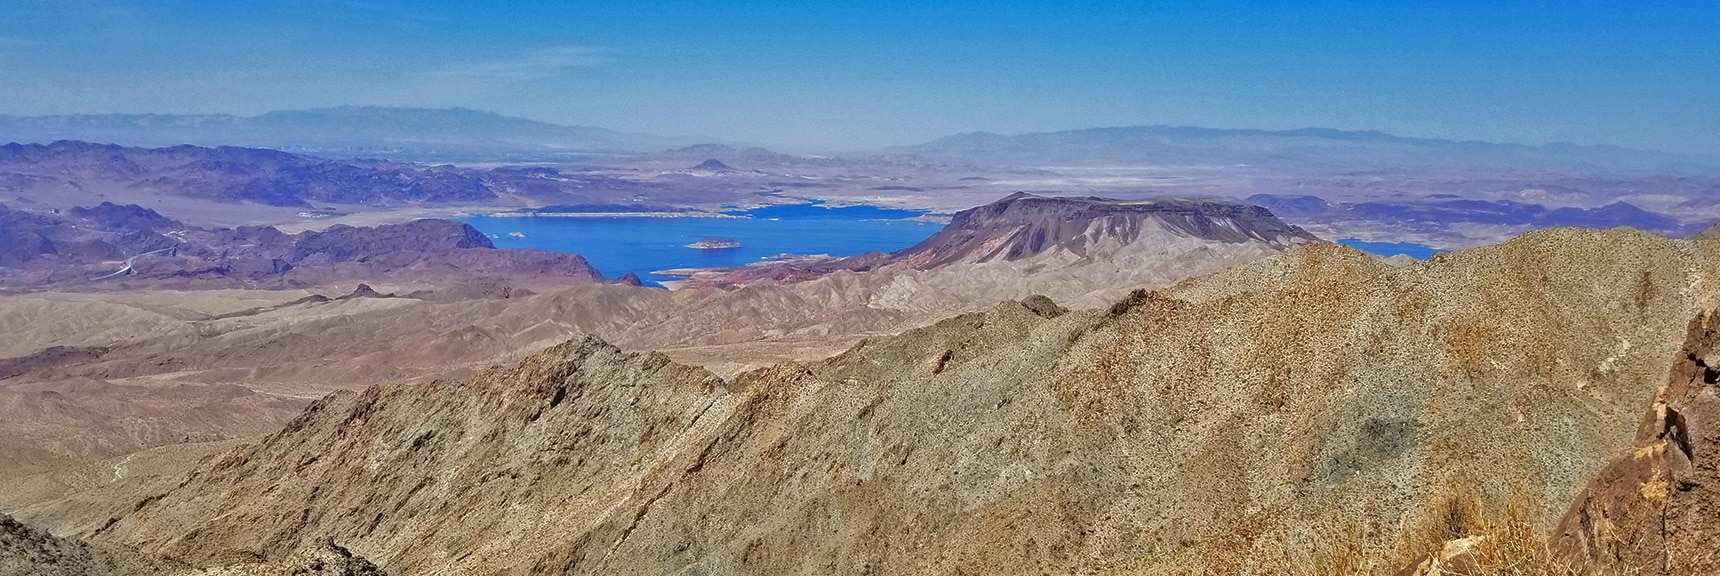 Lake Mead and Fortification Hill from Mt. Wilson Western Approach Ridge Pre-Summit Bluff | Mt. Wilson | Lake Mead National Recreation Area, Arizona